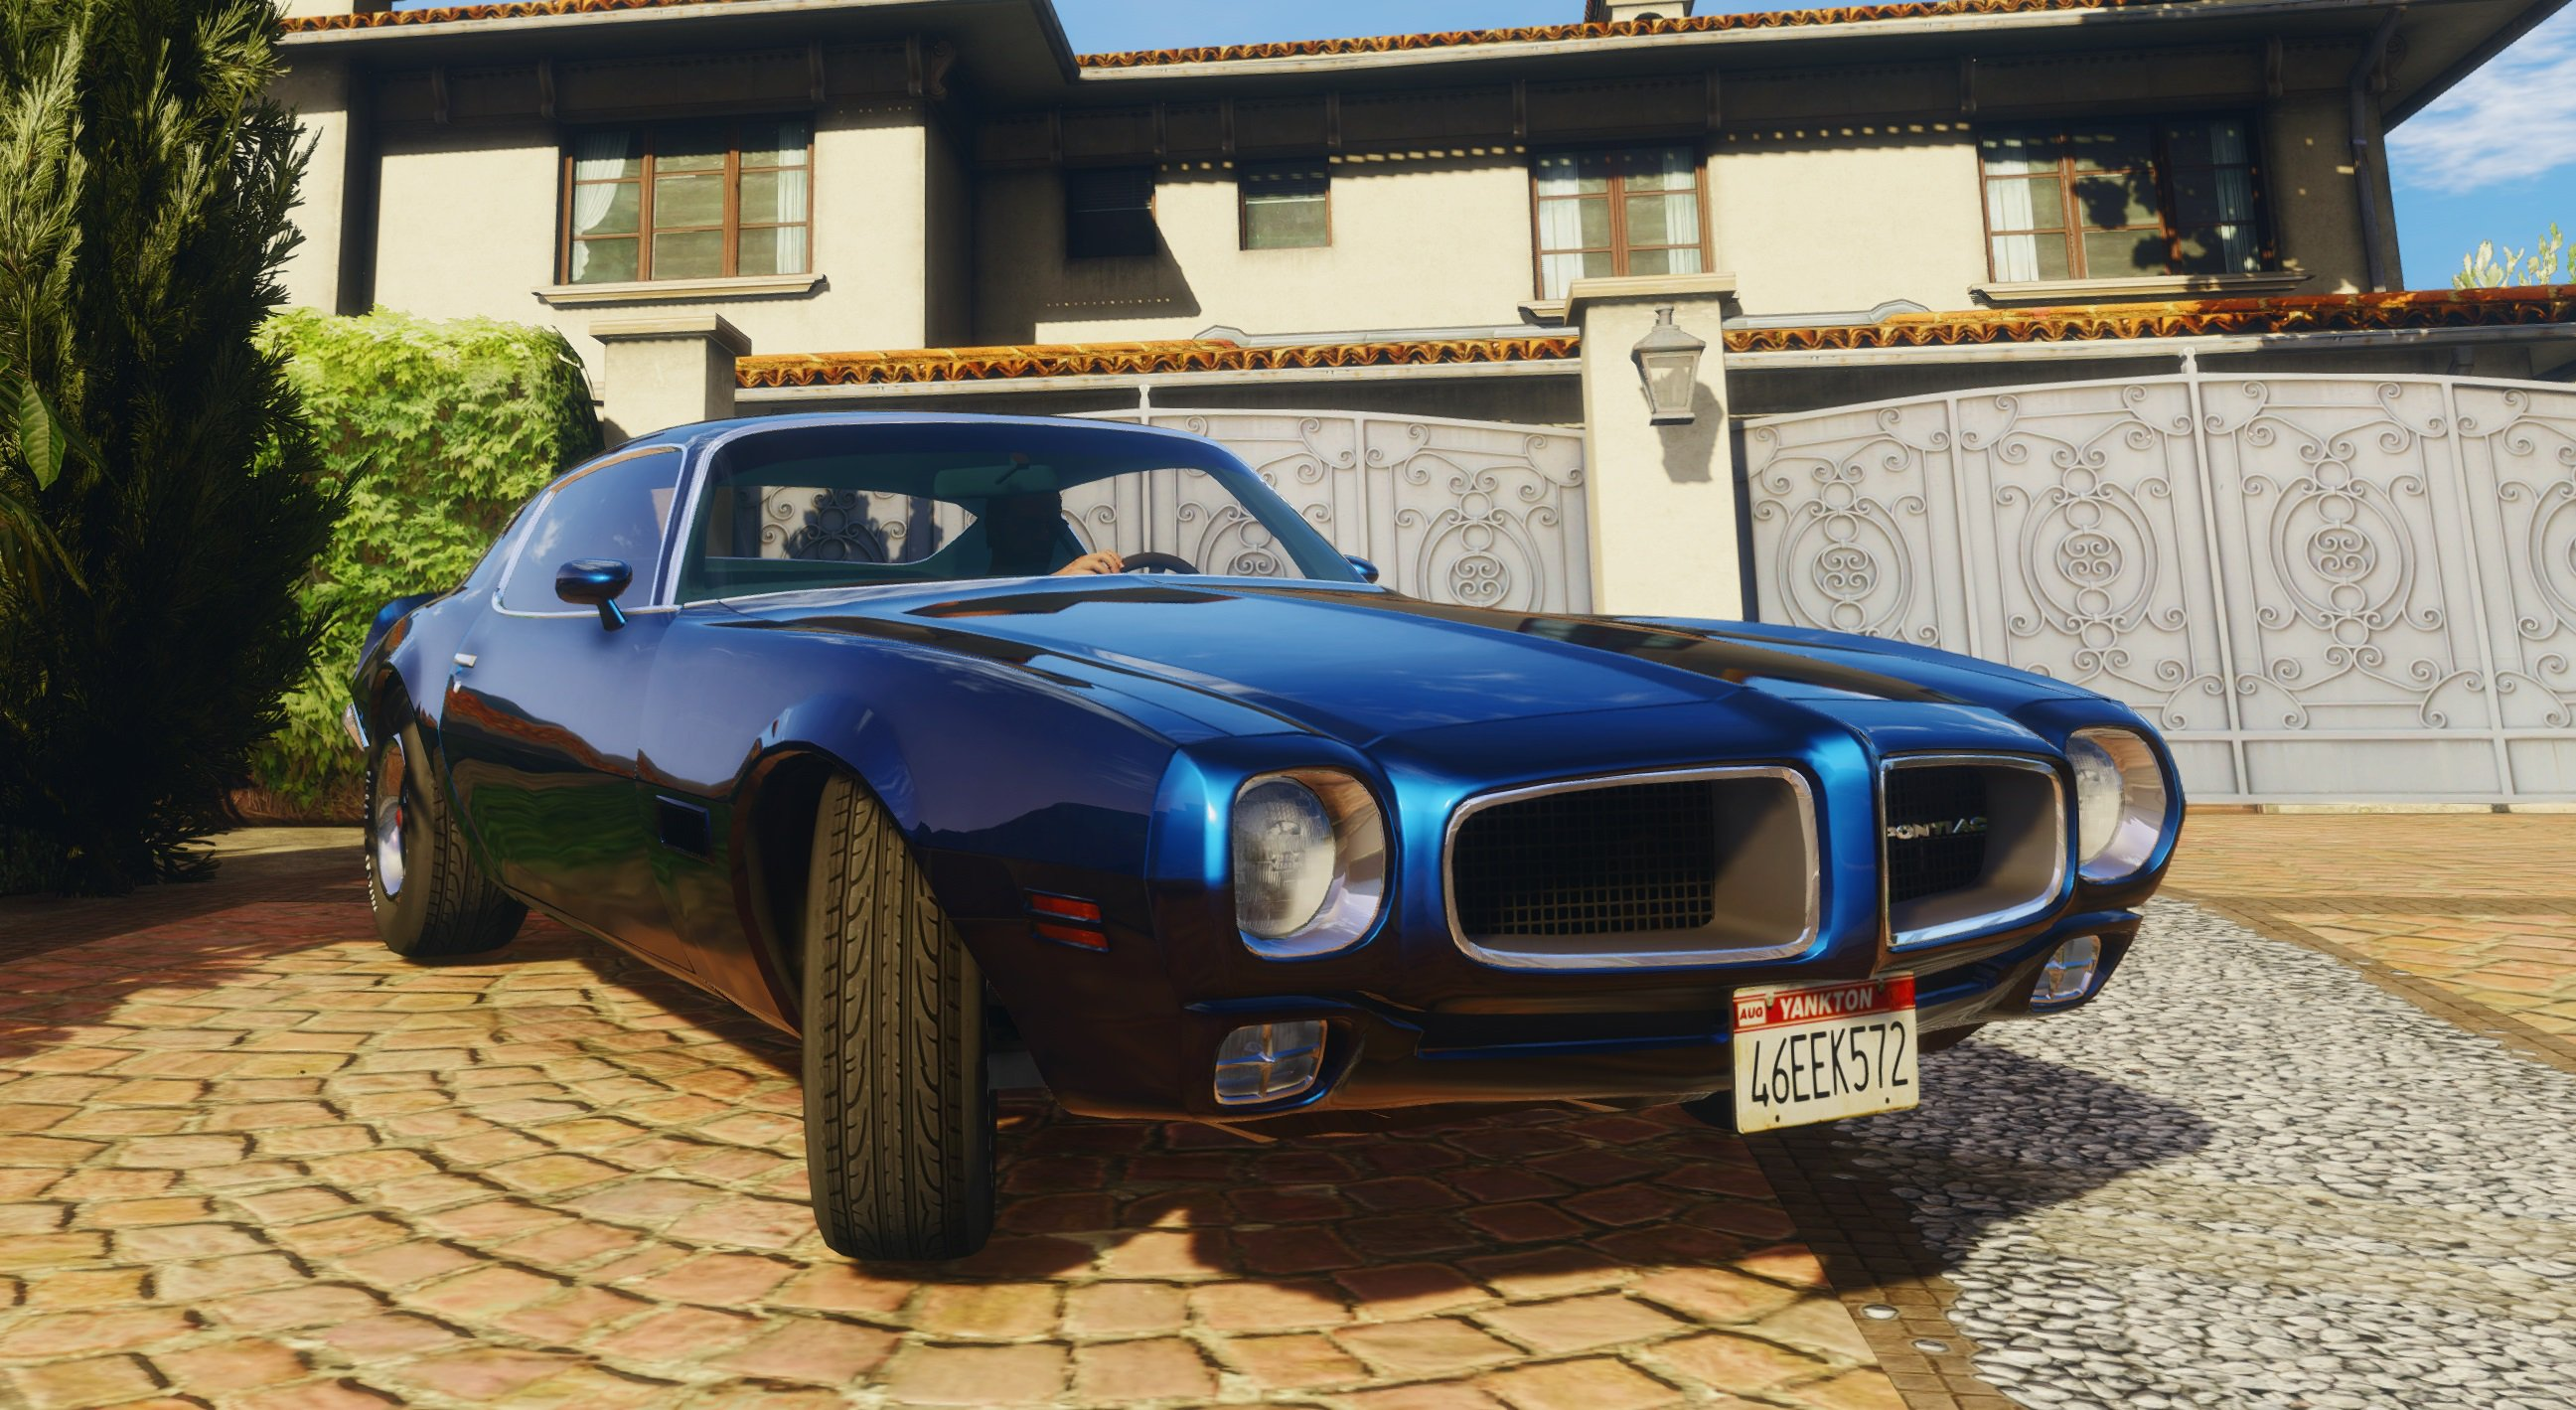 1970 pontiac firebird v hicules t l chargements gta 5. Black Bedroom Furniture Sets. Home Design Ideas